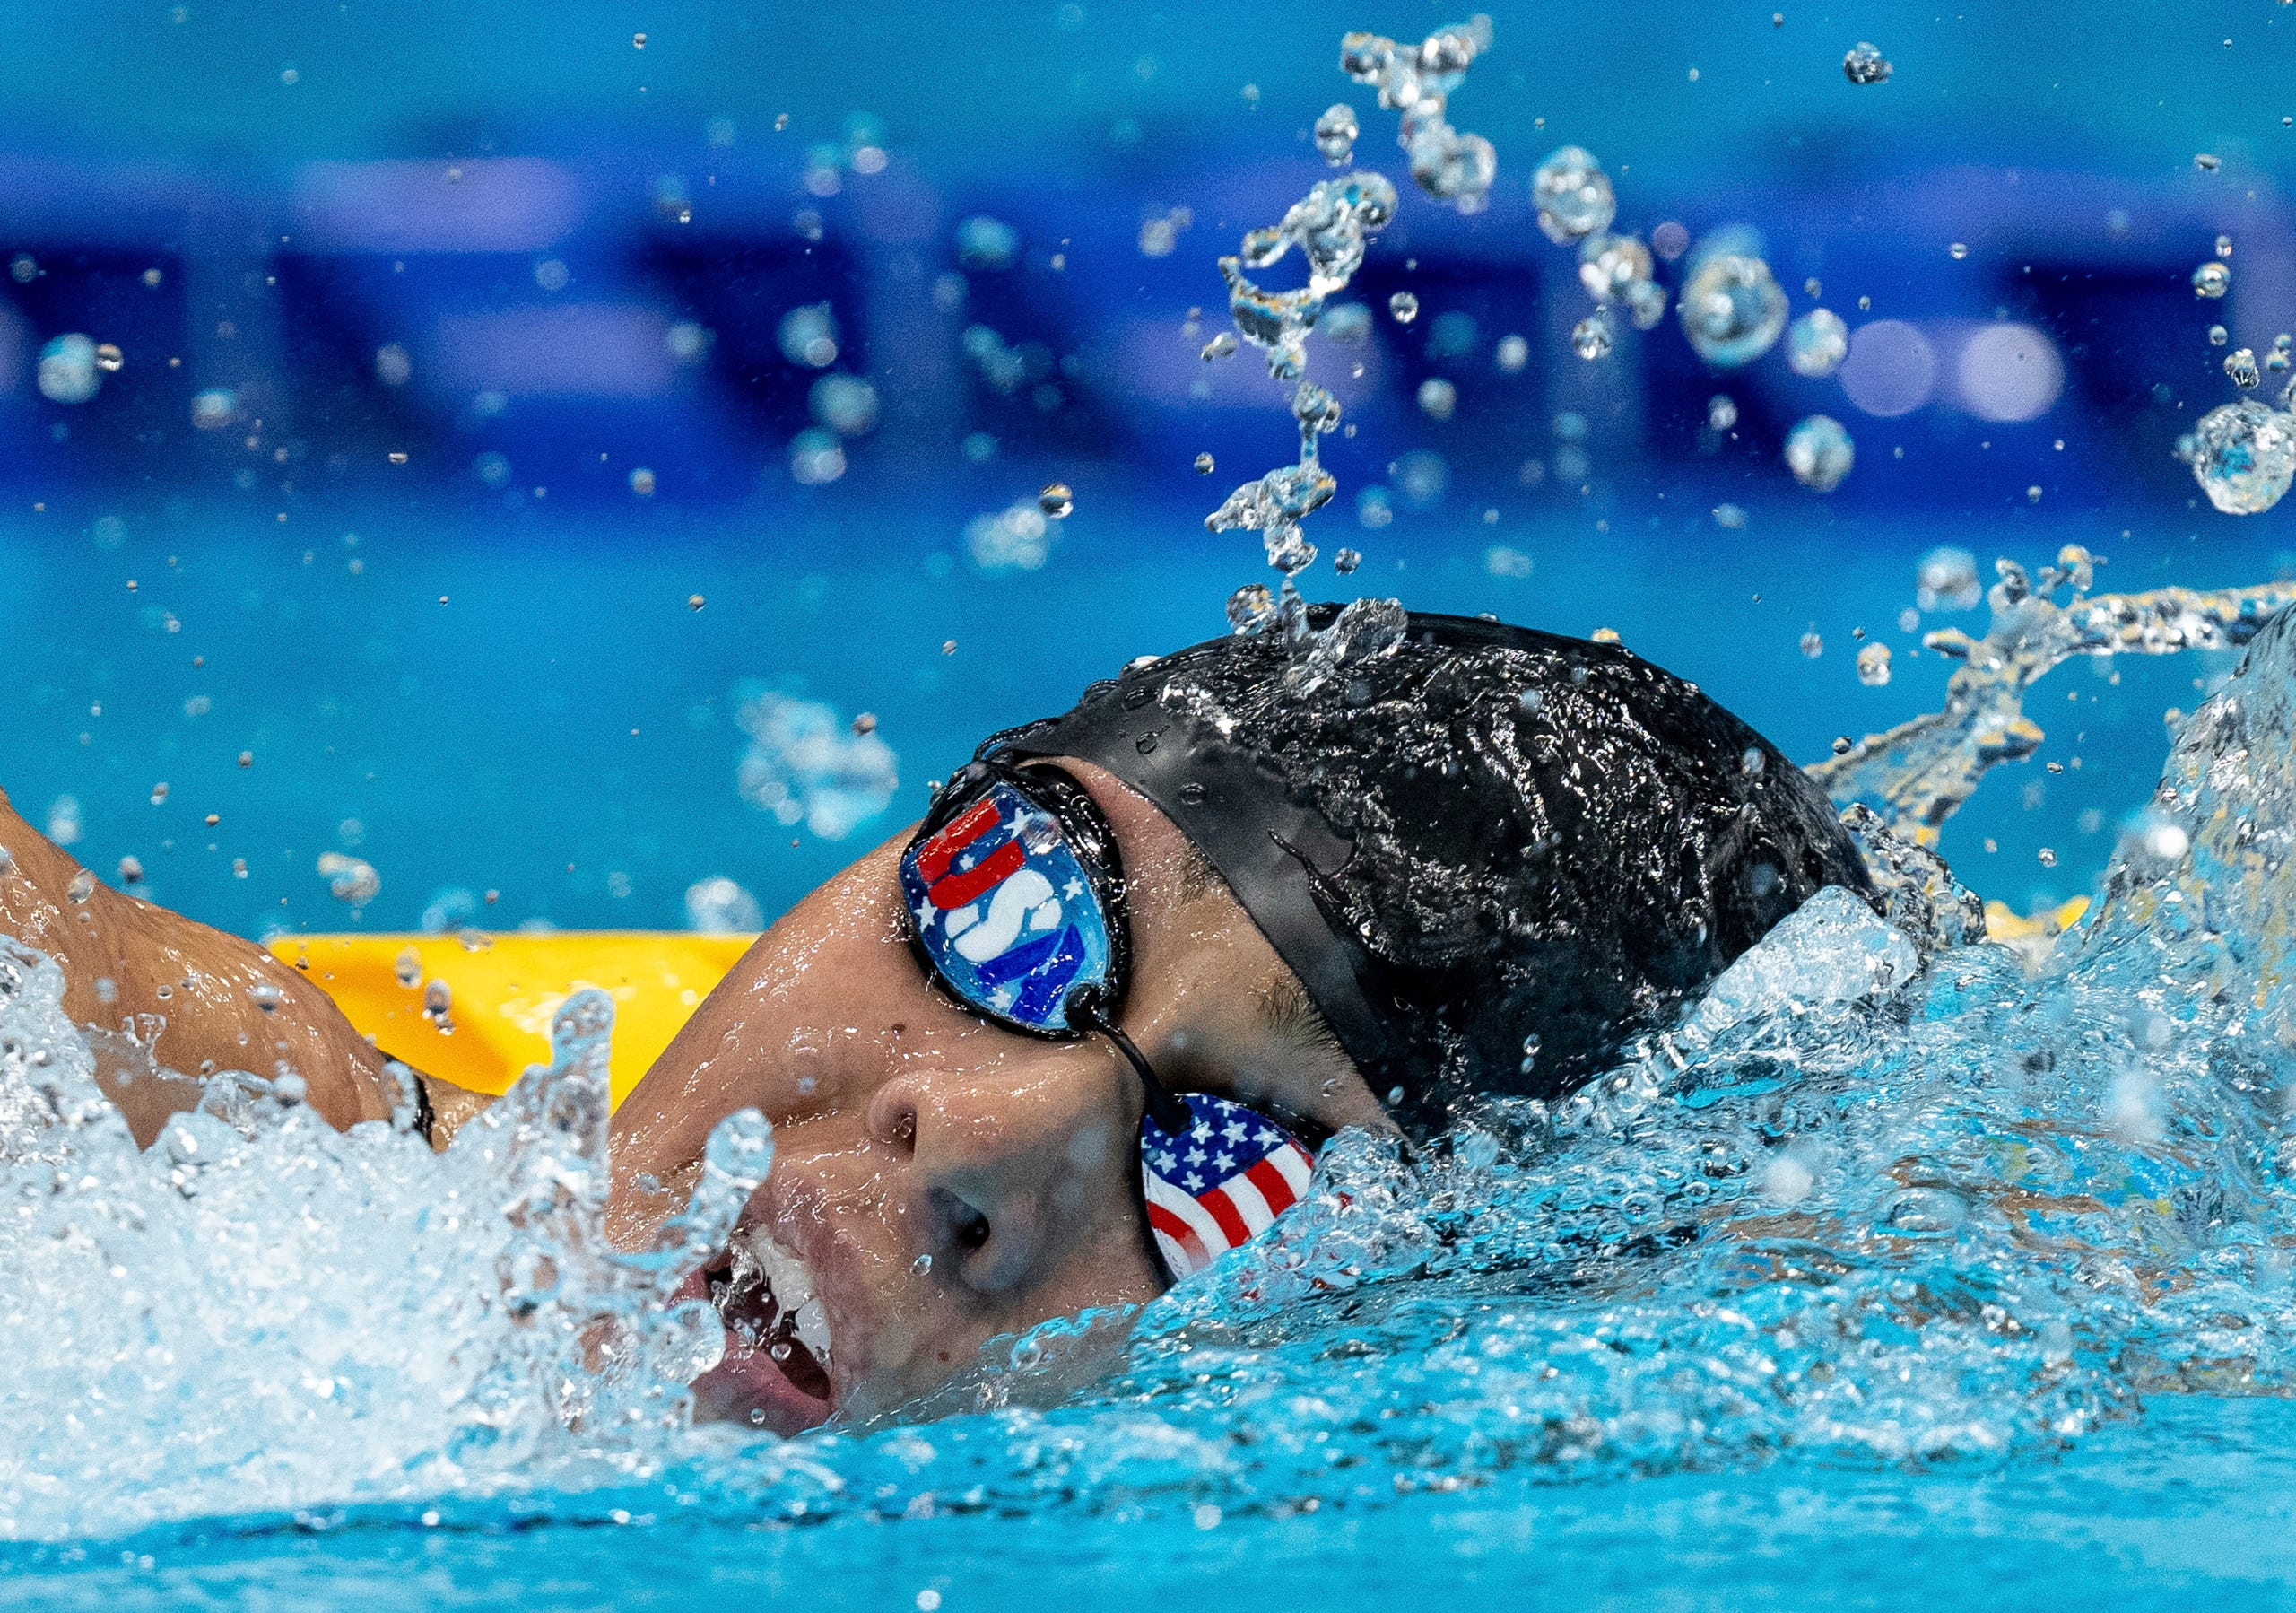 August 26, 2021: USA's Anastasia Pagonis competes in the Women's 400m Freestyle S11 Swimming Final during the Tokyo 2020 Paralympic Games in Tokyo.